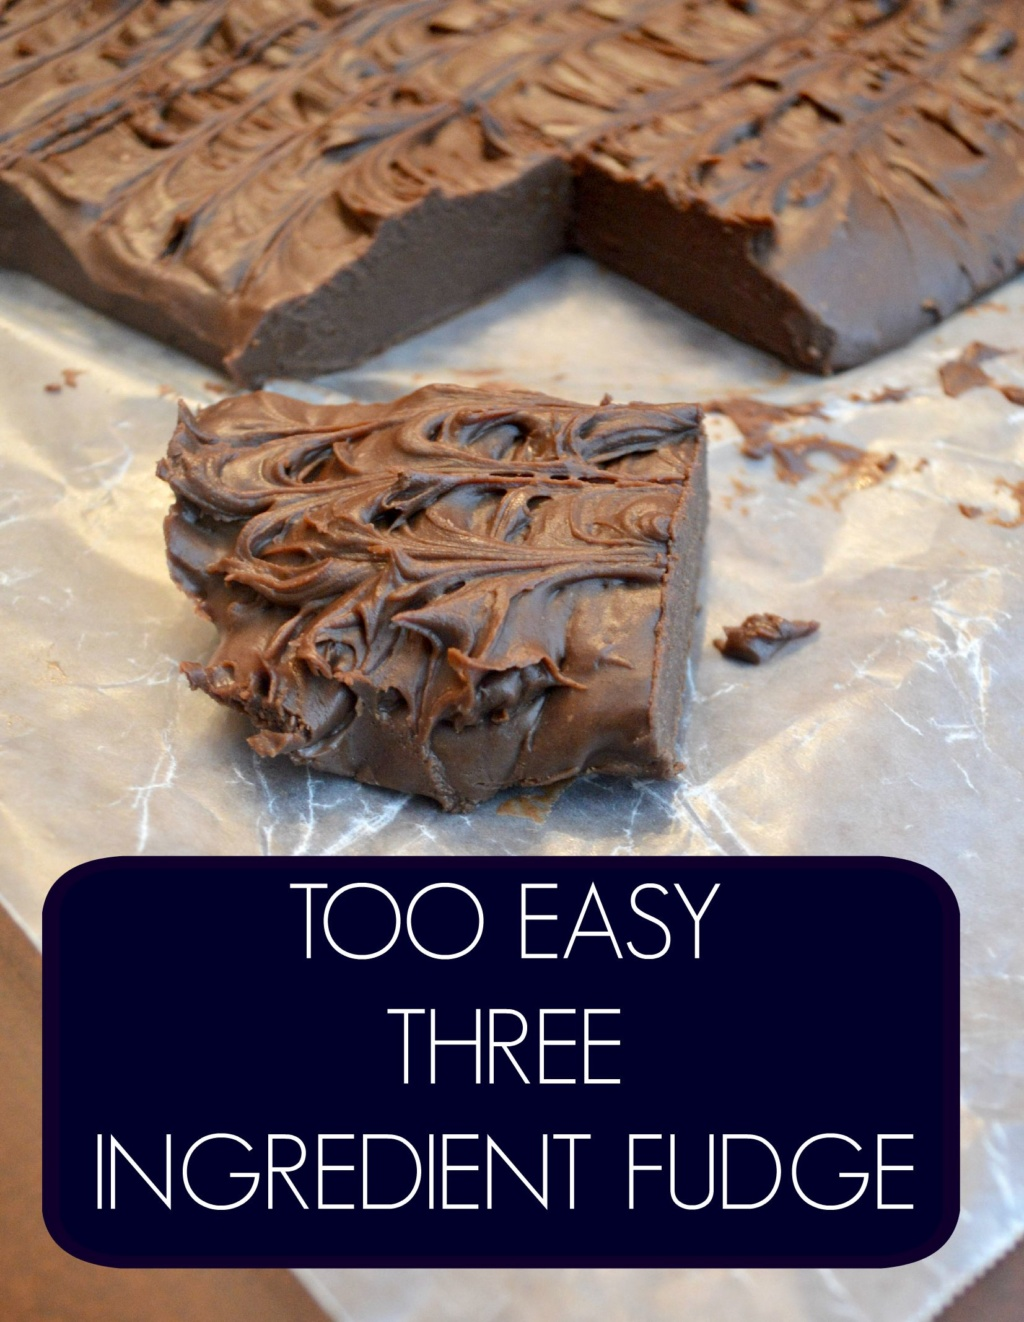 Too Easy Three Ingredient Fudge